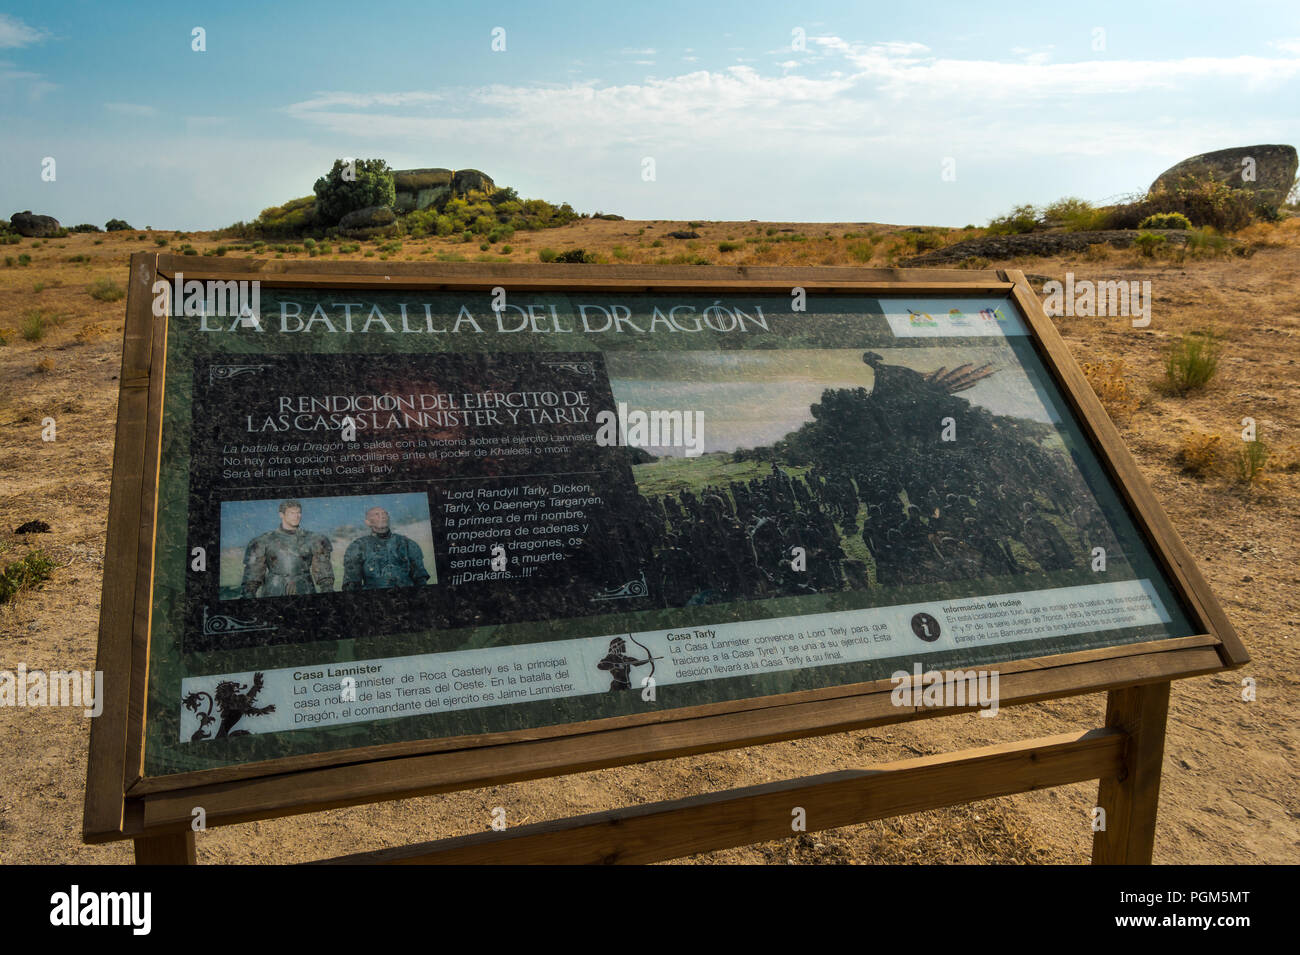 Natural monument of Los Barruecos , place of series Game of Thrones where 'Dragon battle' was recorded, season 7. Sign with information about filming. - Stock Image